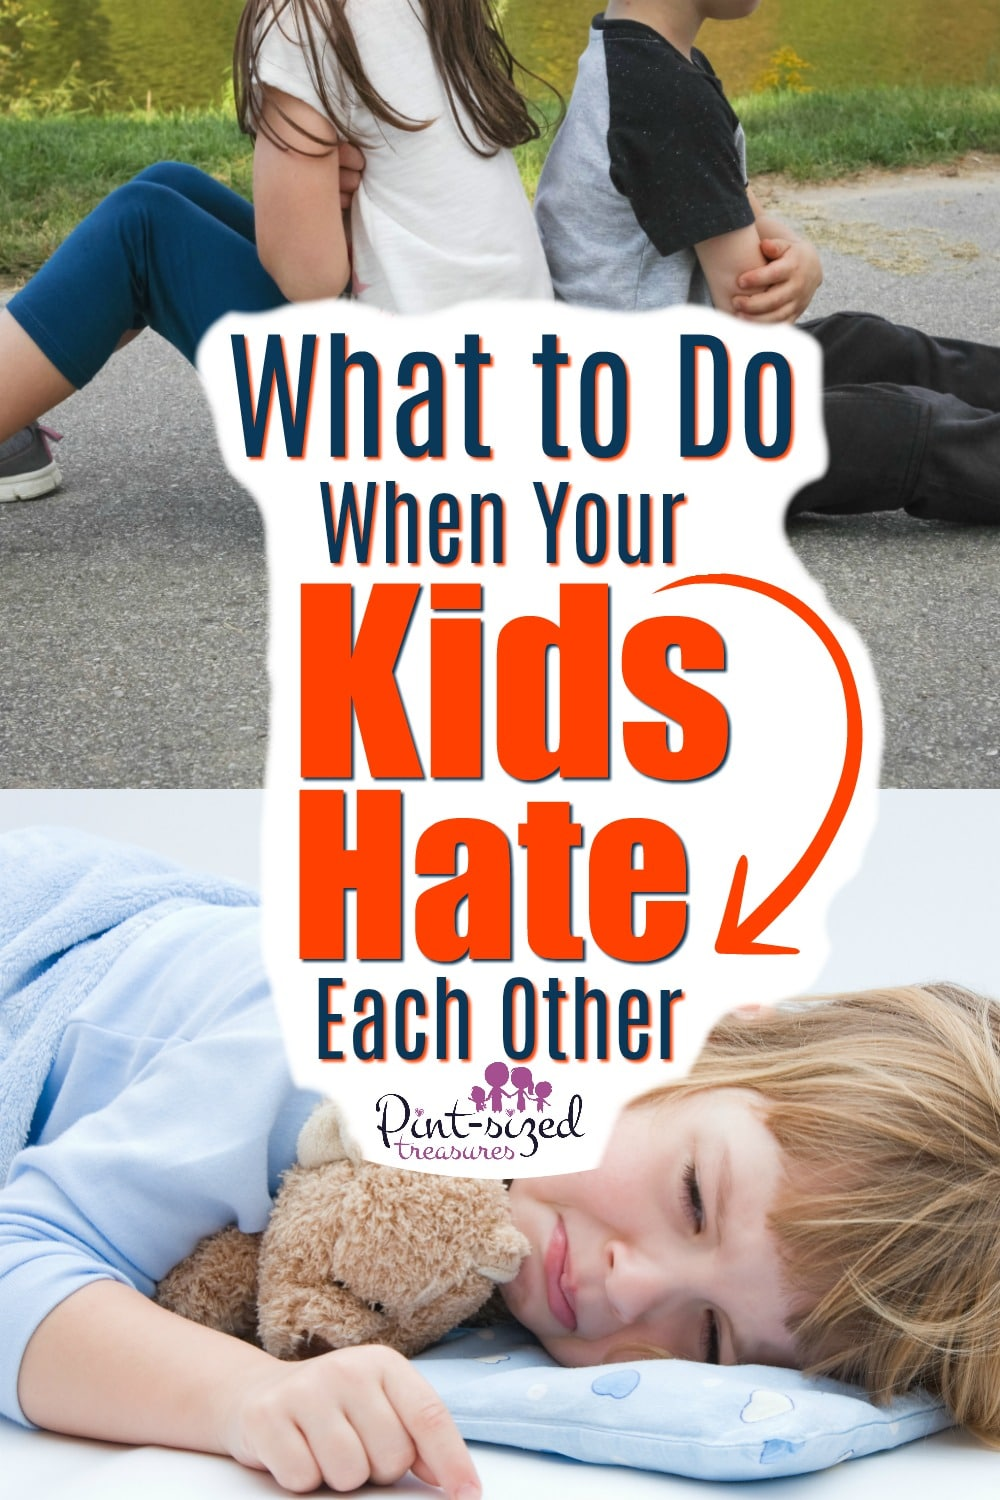 When Kids Hate Each Other